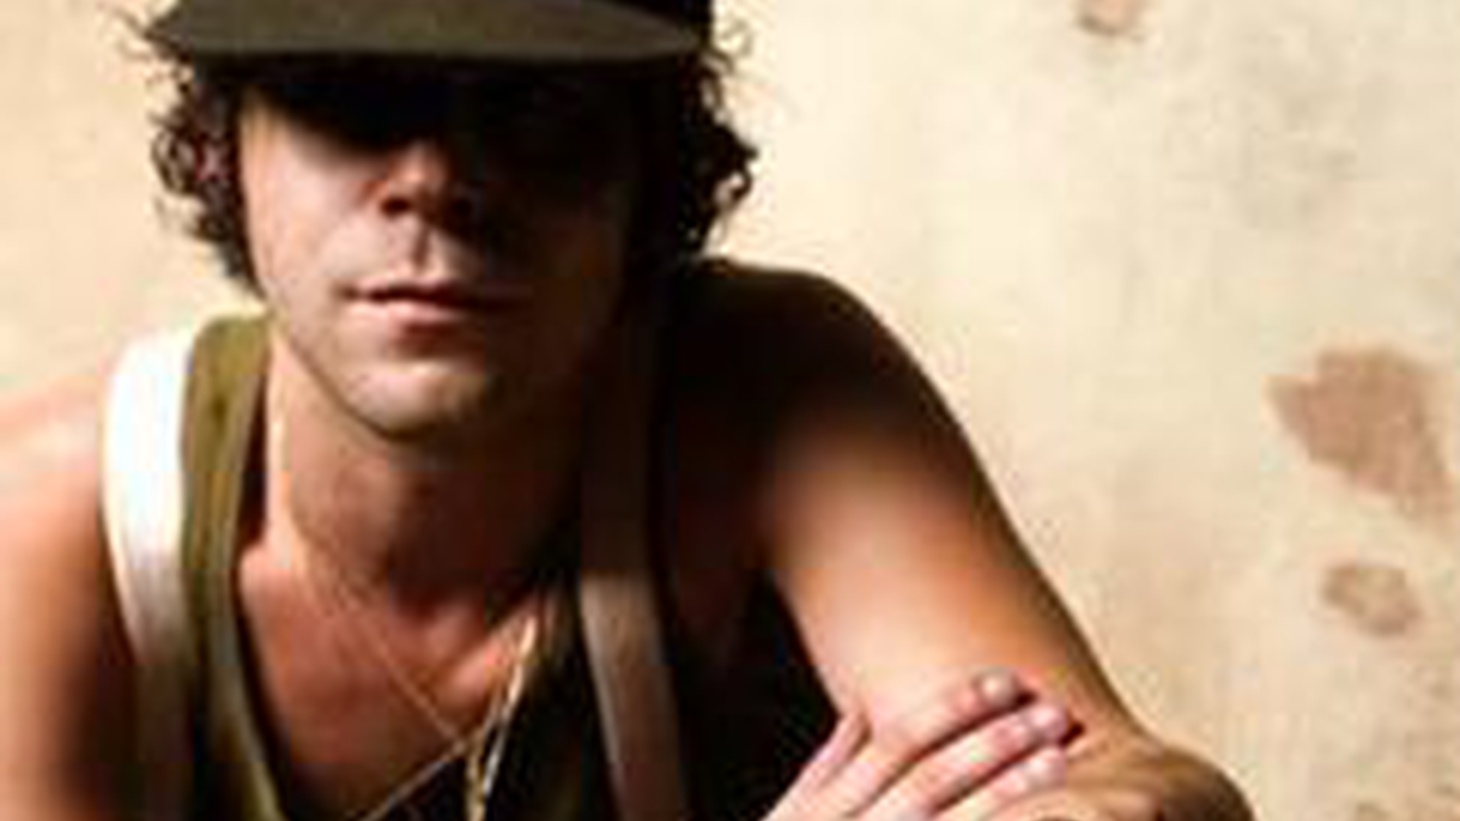 Langhorne Slim writes love songs, sometimes about a person or an event, but they are all culled from his personal experiences...